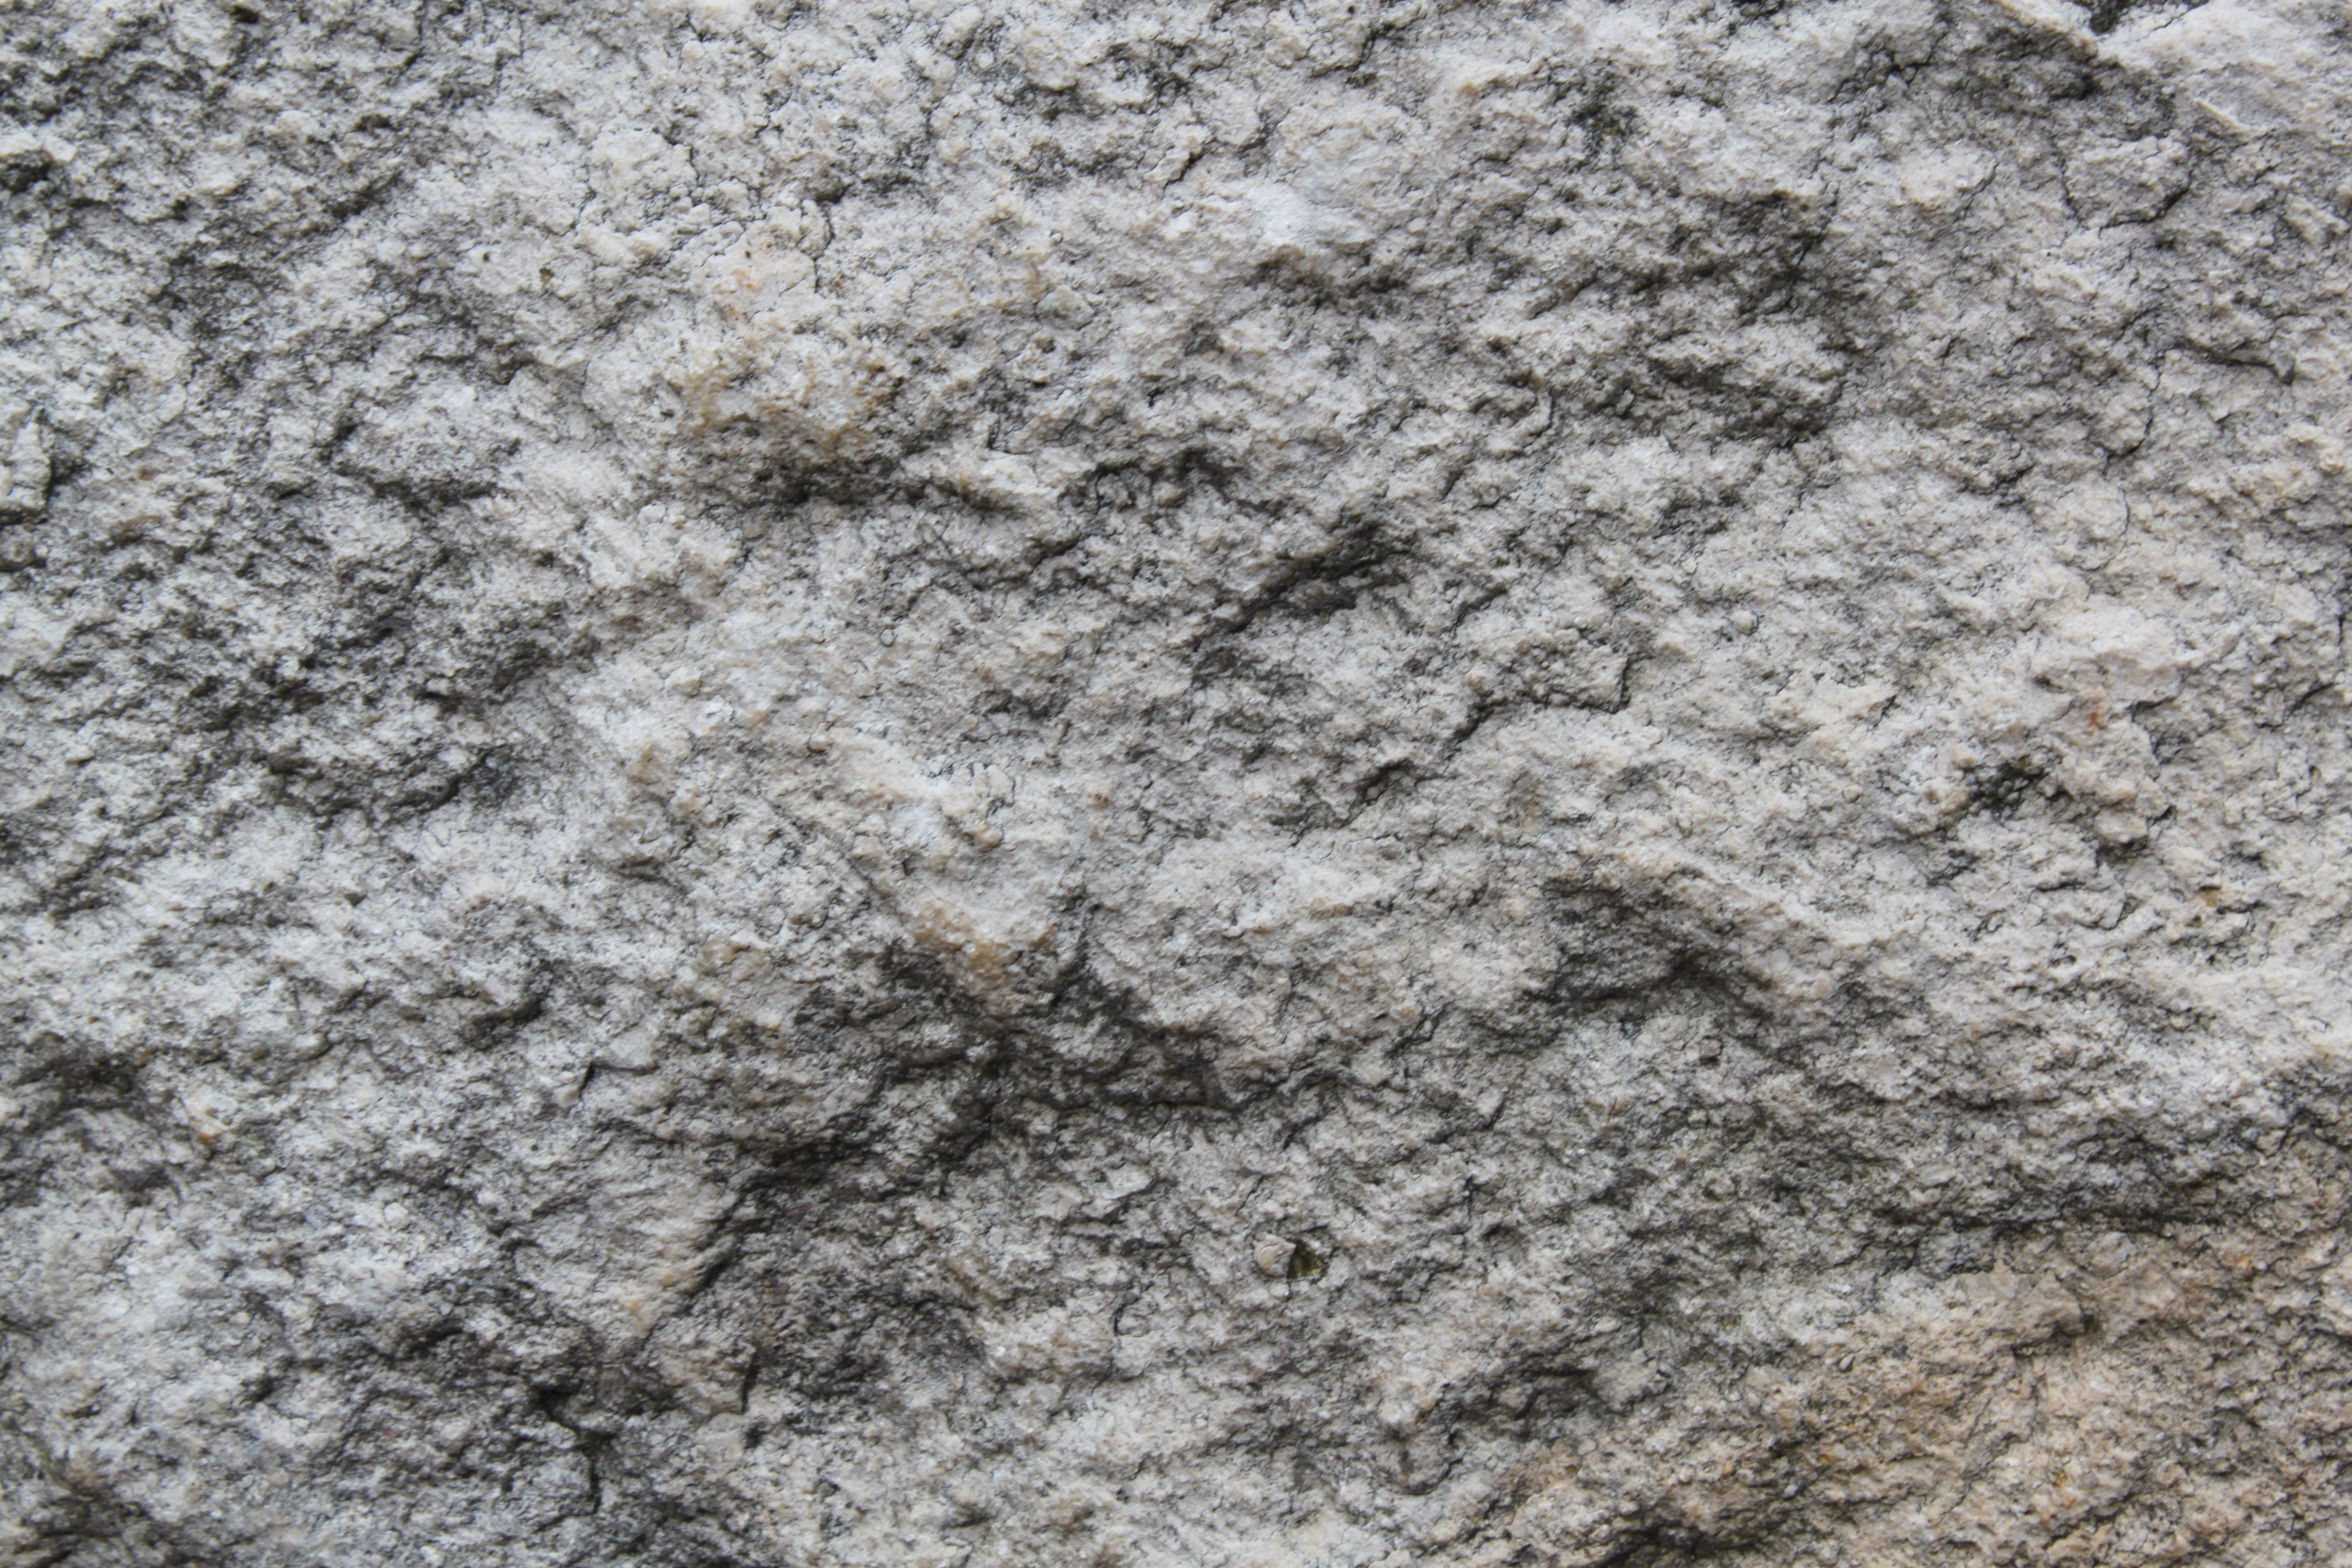 Rough Stone Block Texture : Rough stone texture pinterest wall finishes and walls